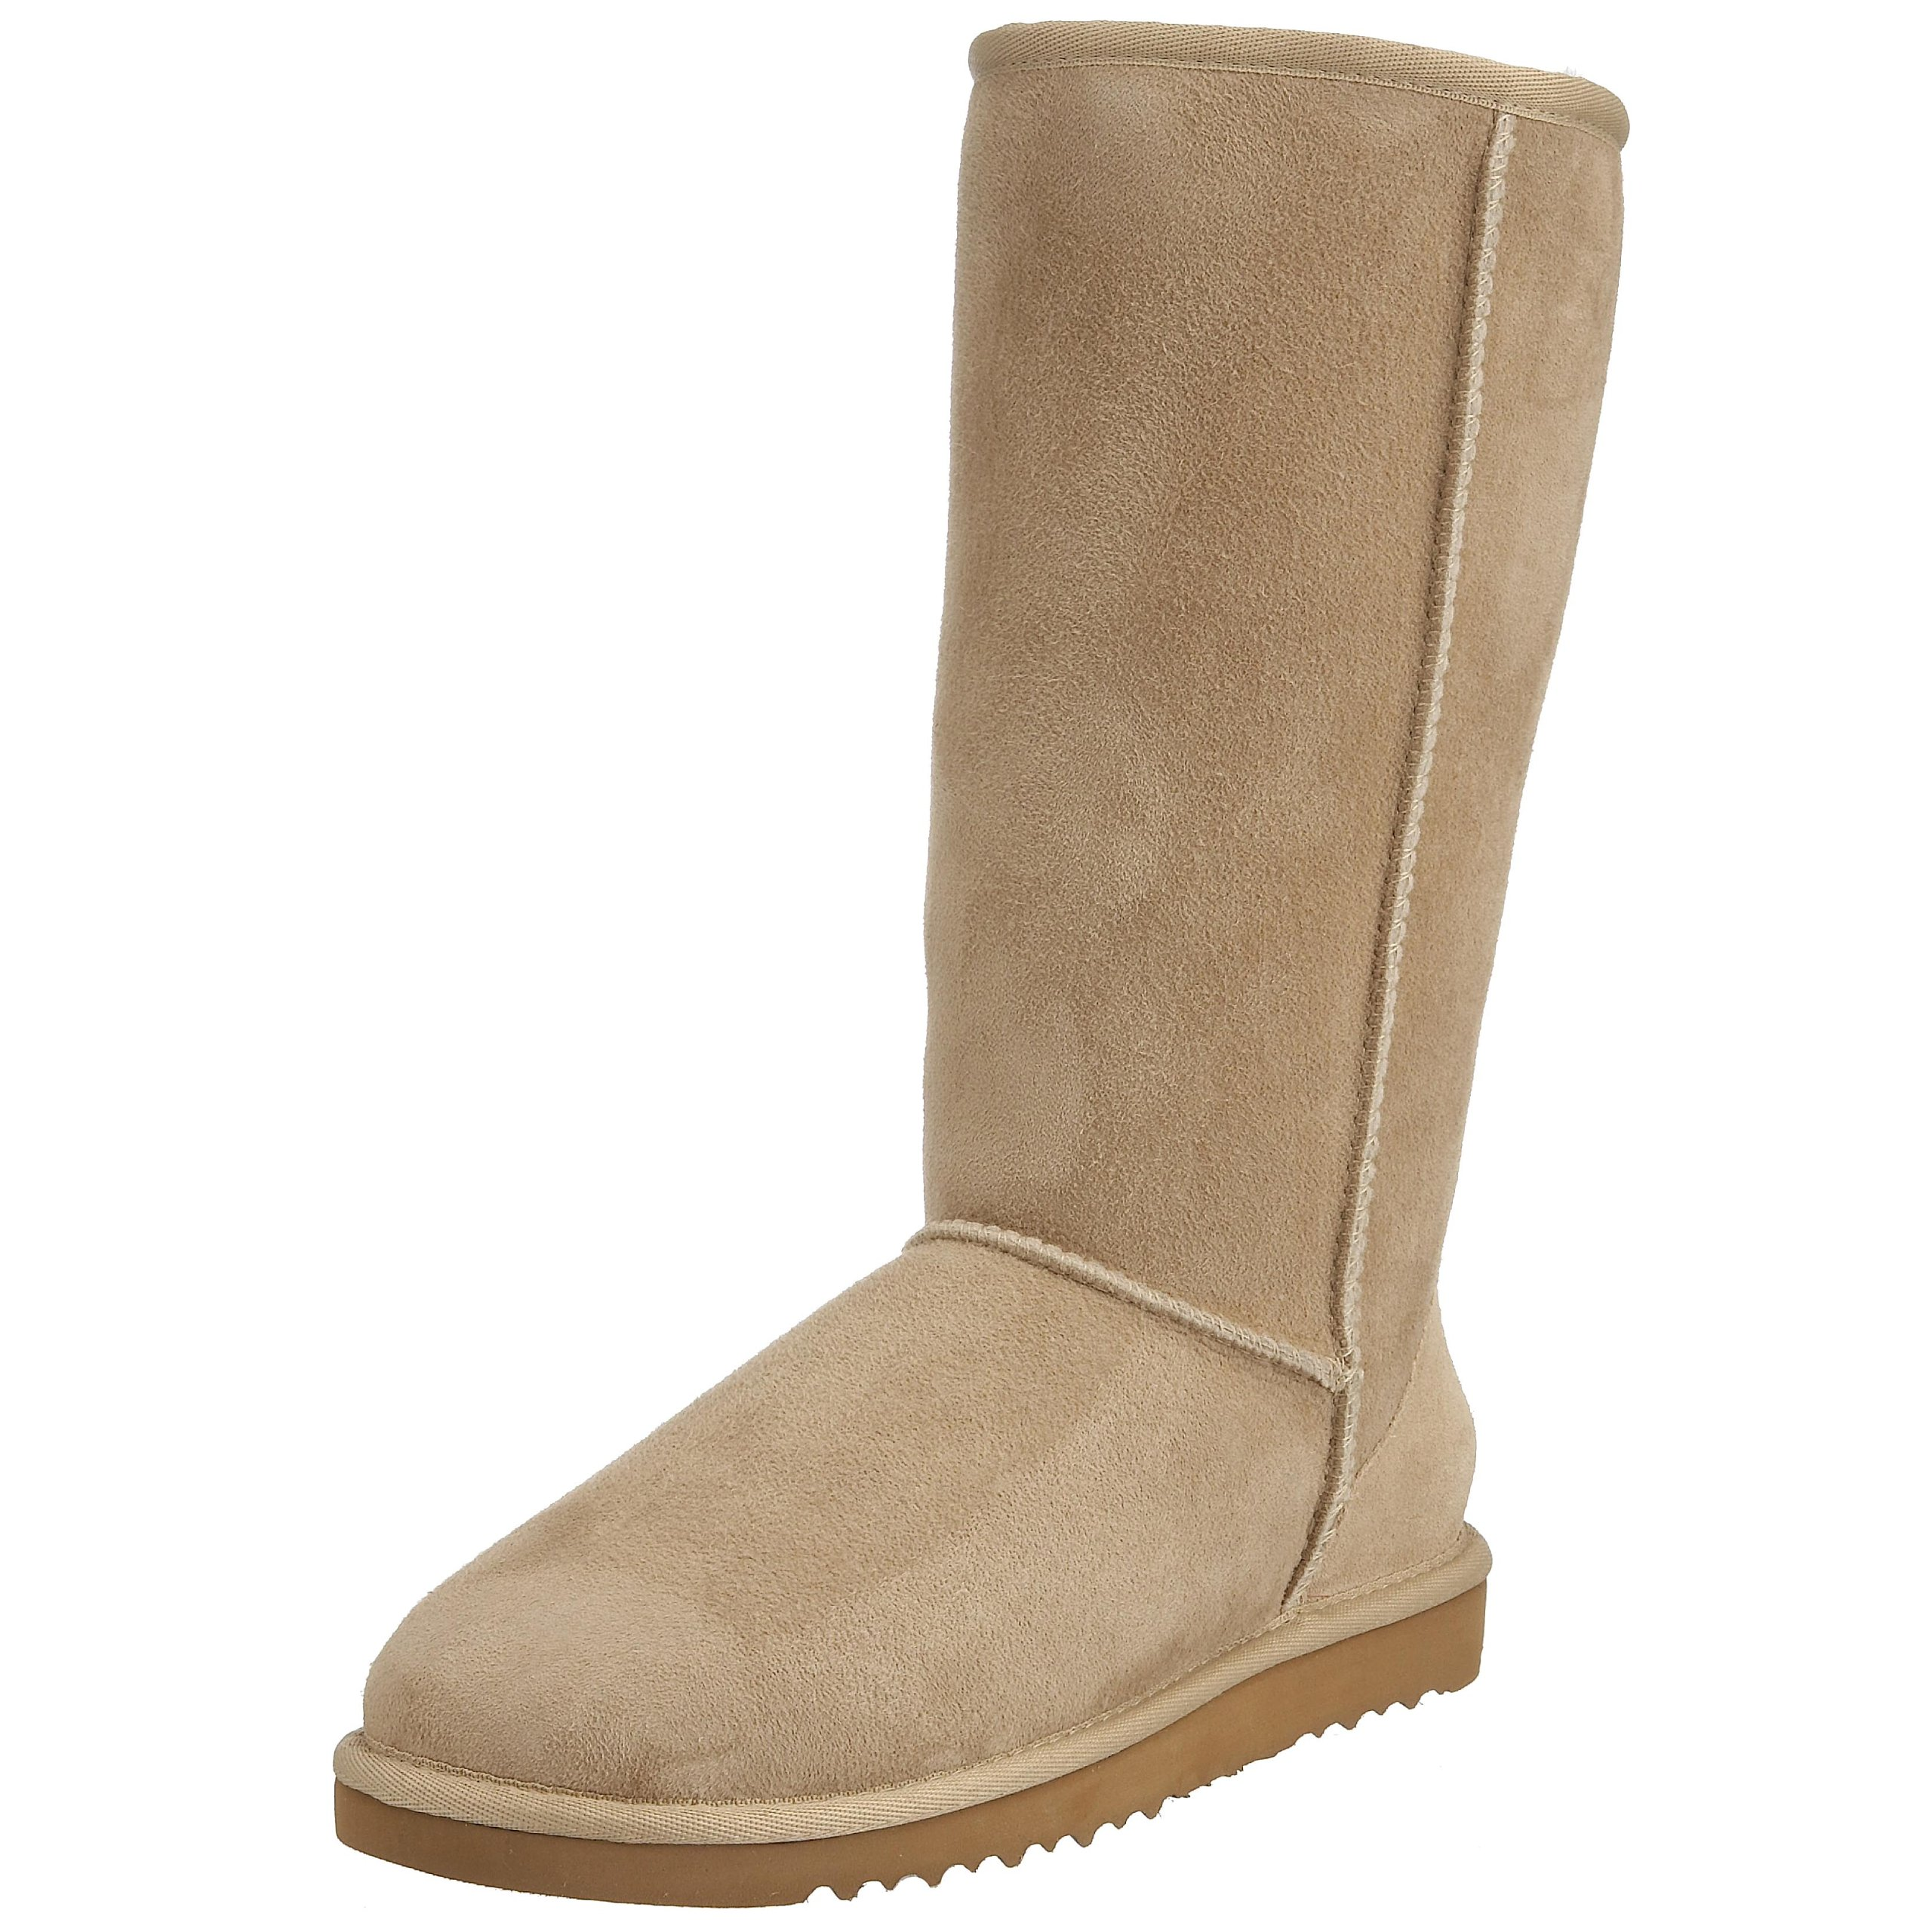 UGG Australia Womens Classic Tall Boot Sand Size 7 by UGG